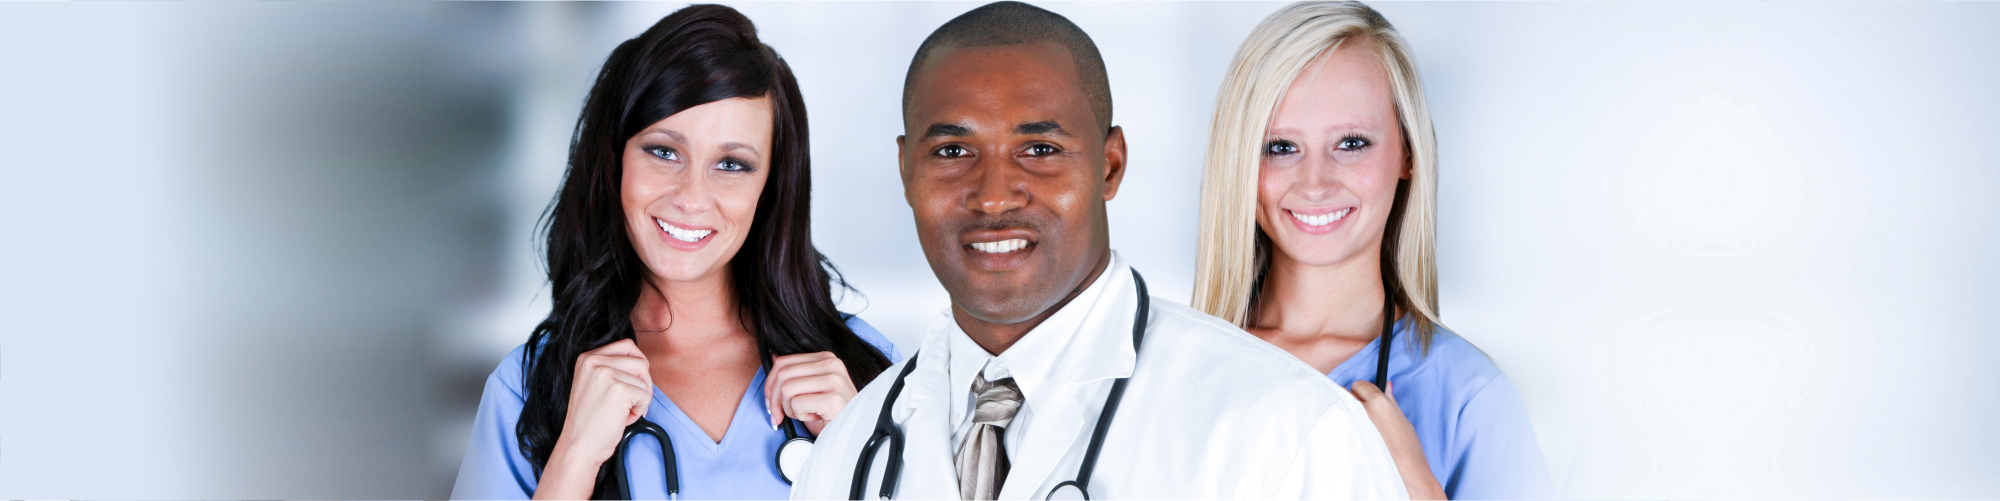 doctor and female nurse smiling